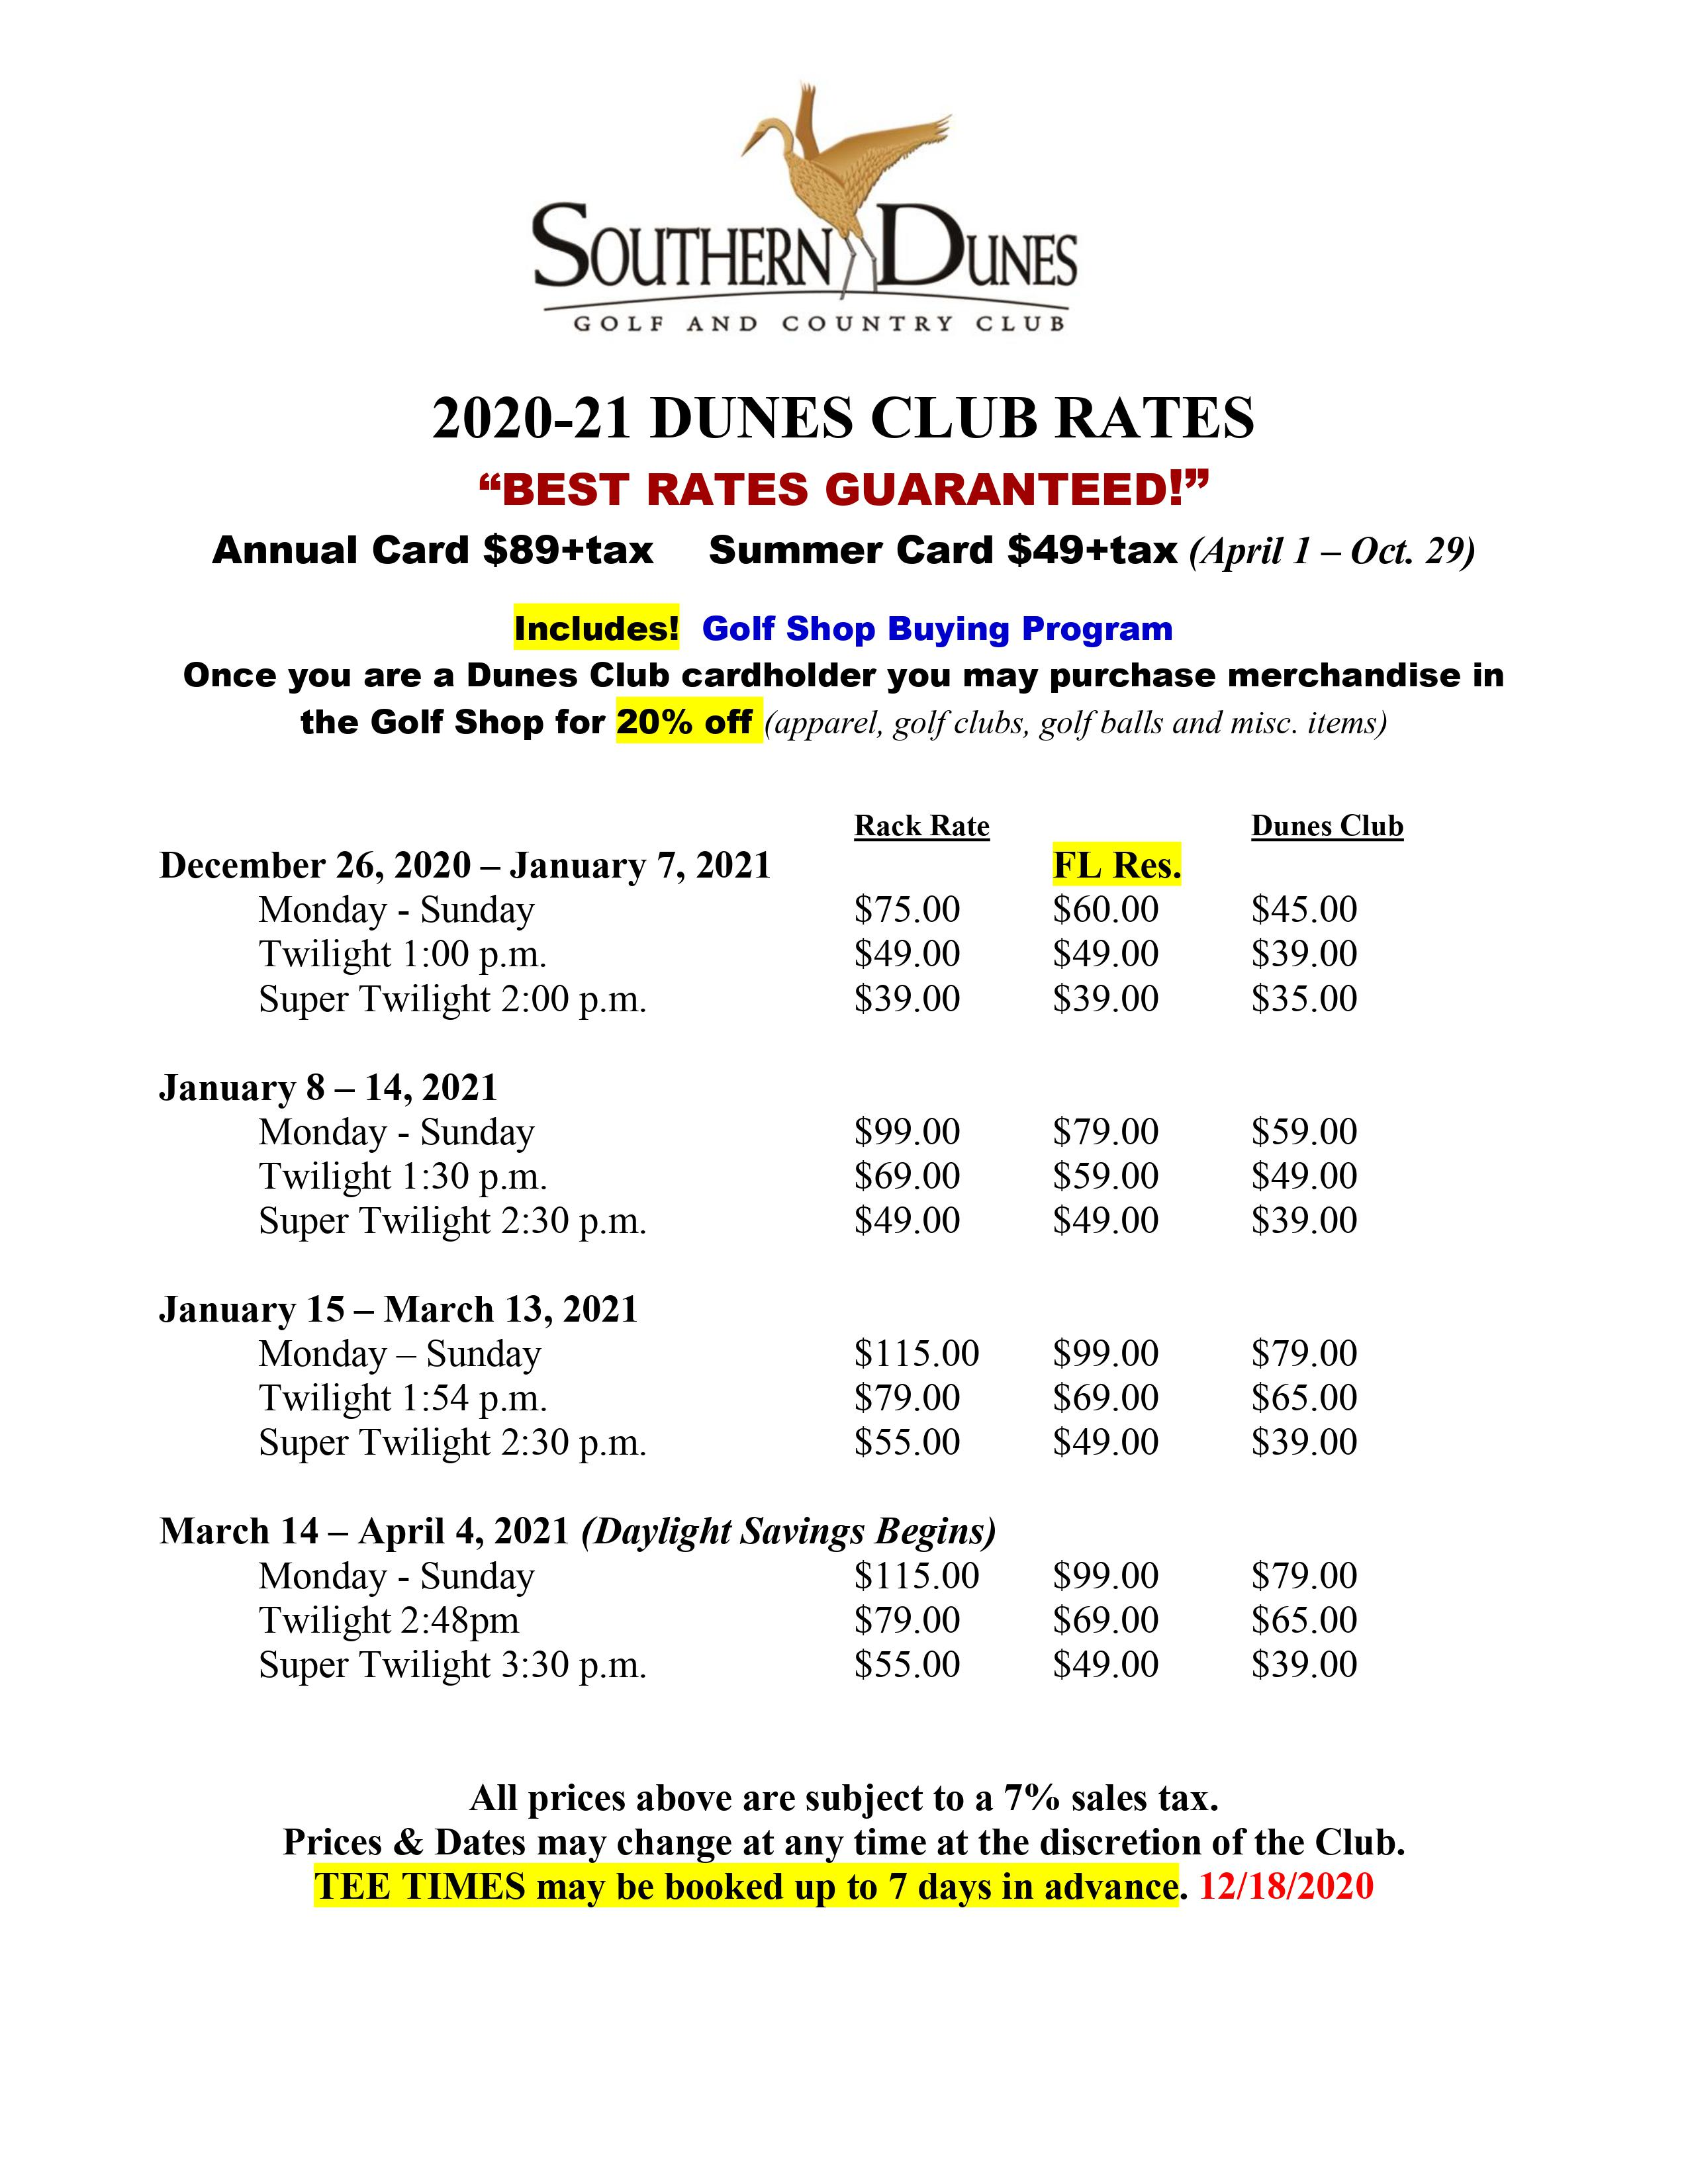 Dunes Club Rates 2020 revised